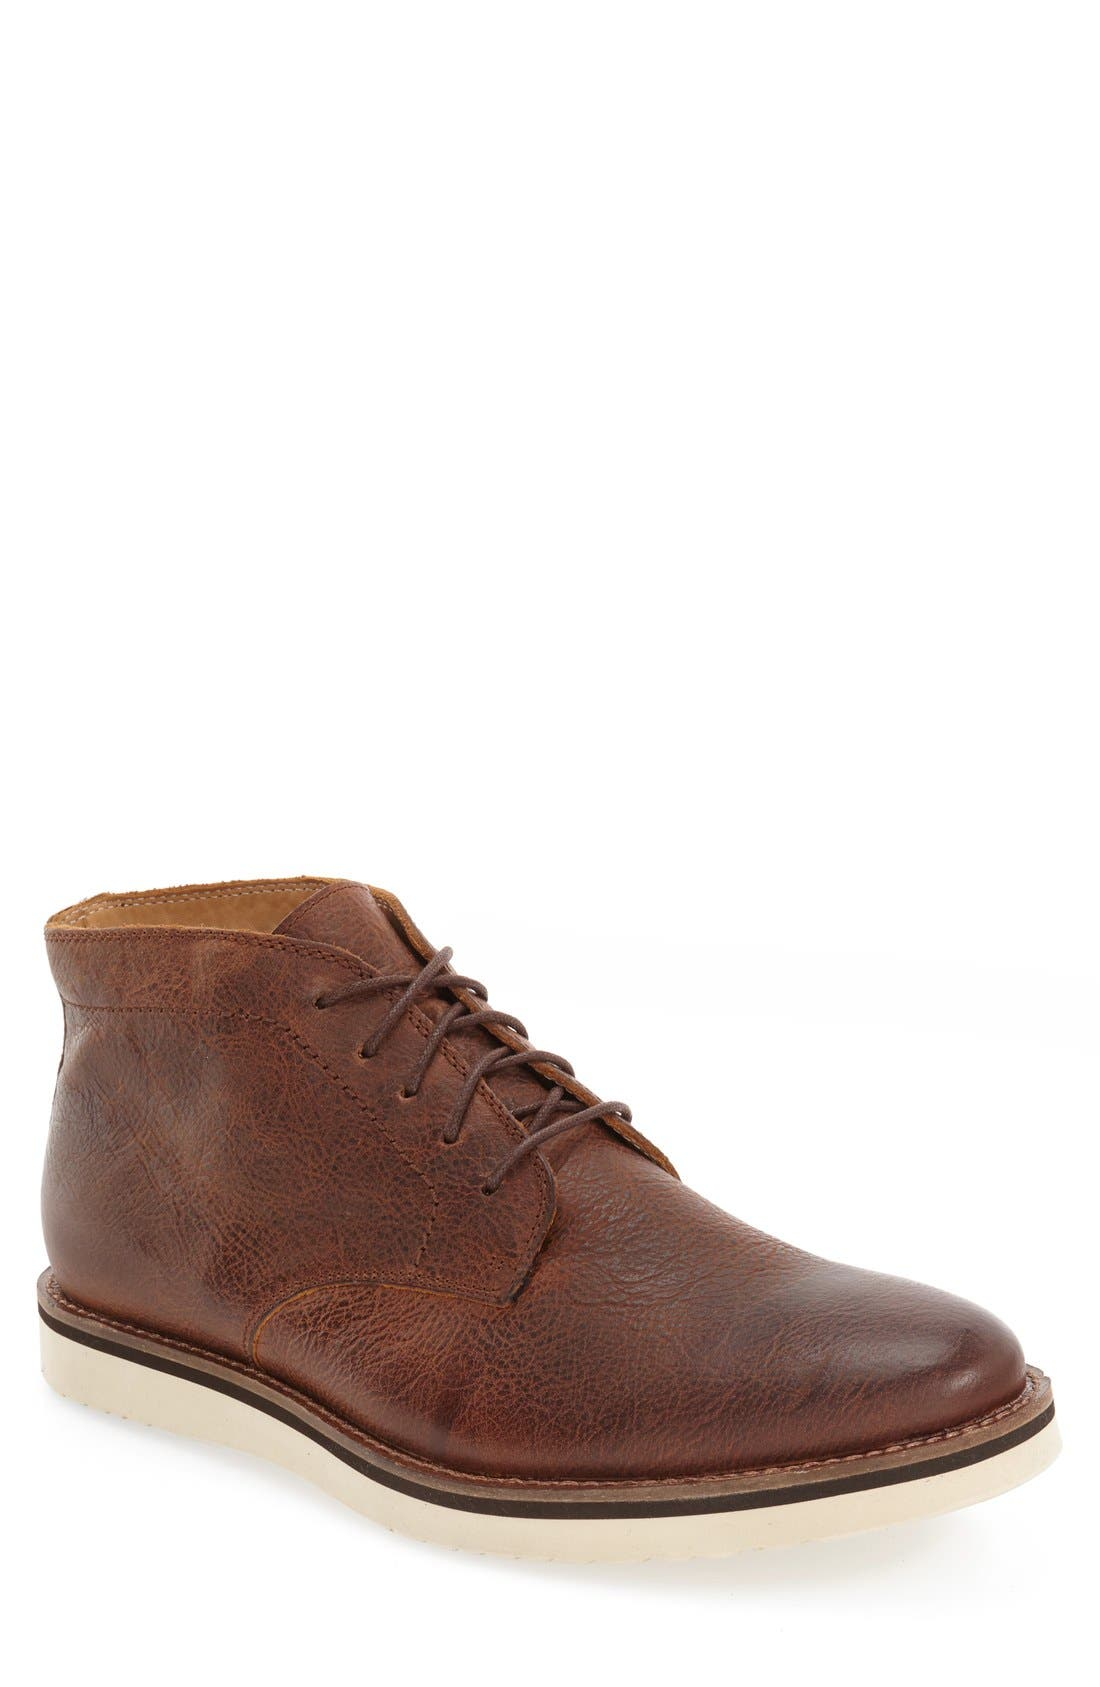 'Farley' Chukka Boot,                         Main,                         color, Caramel Leather